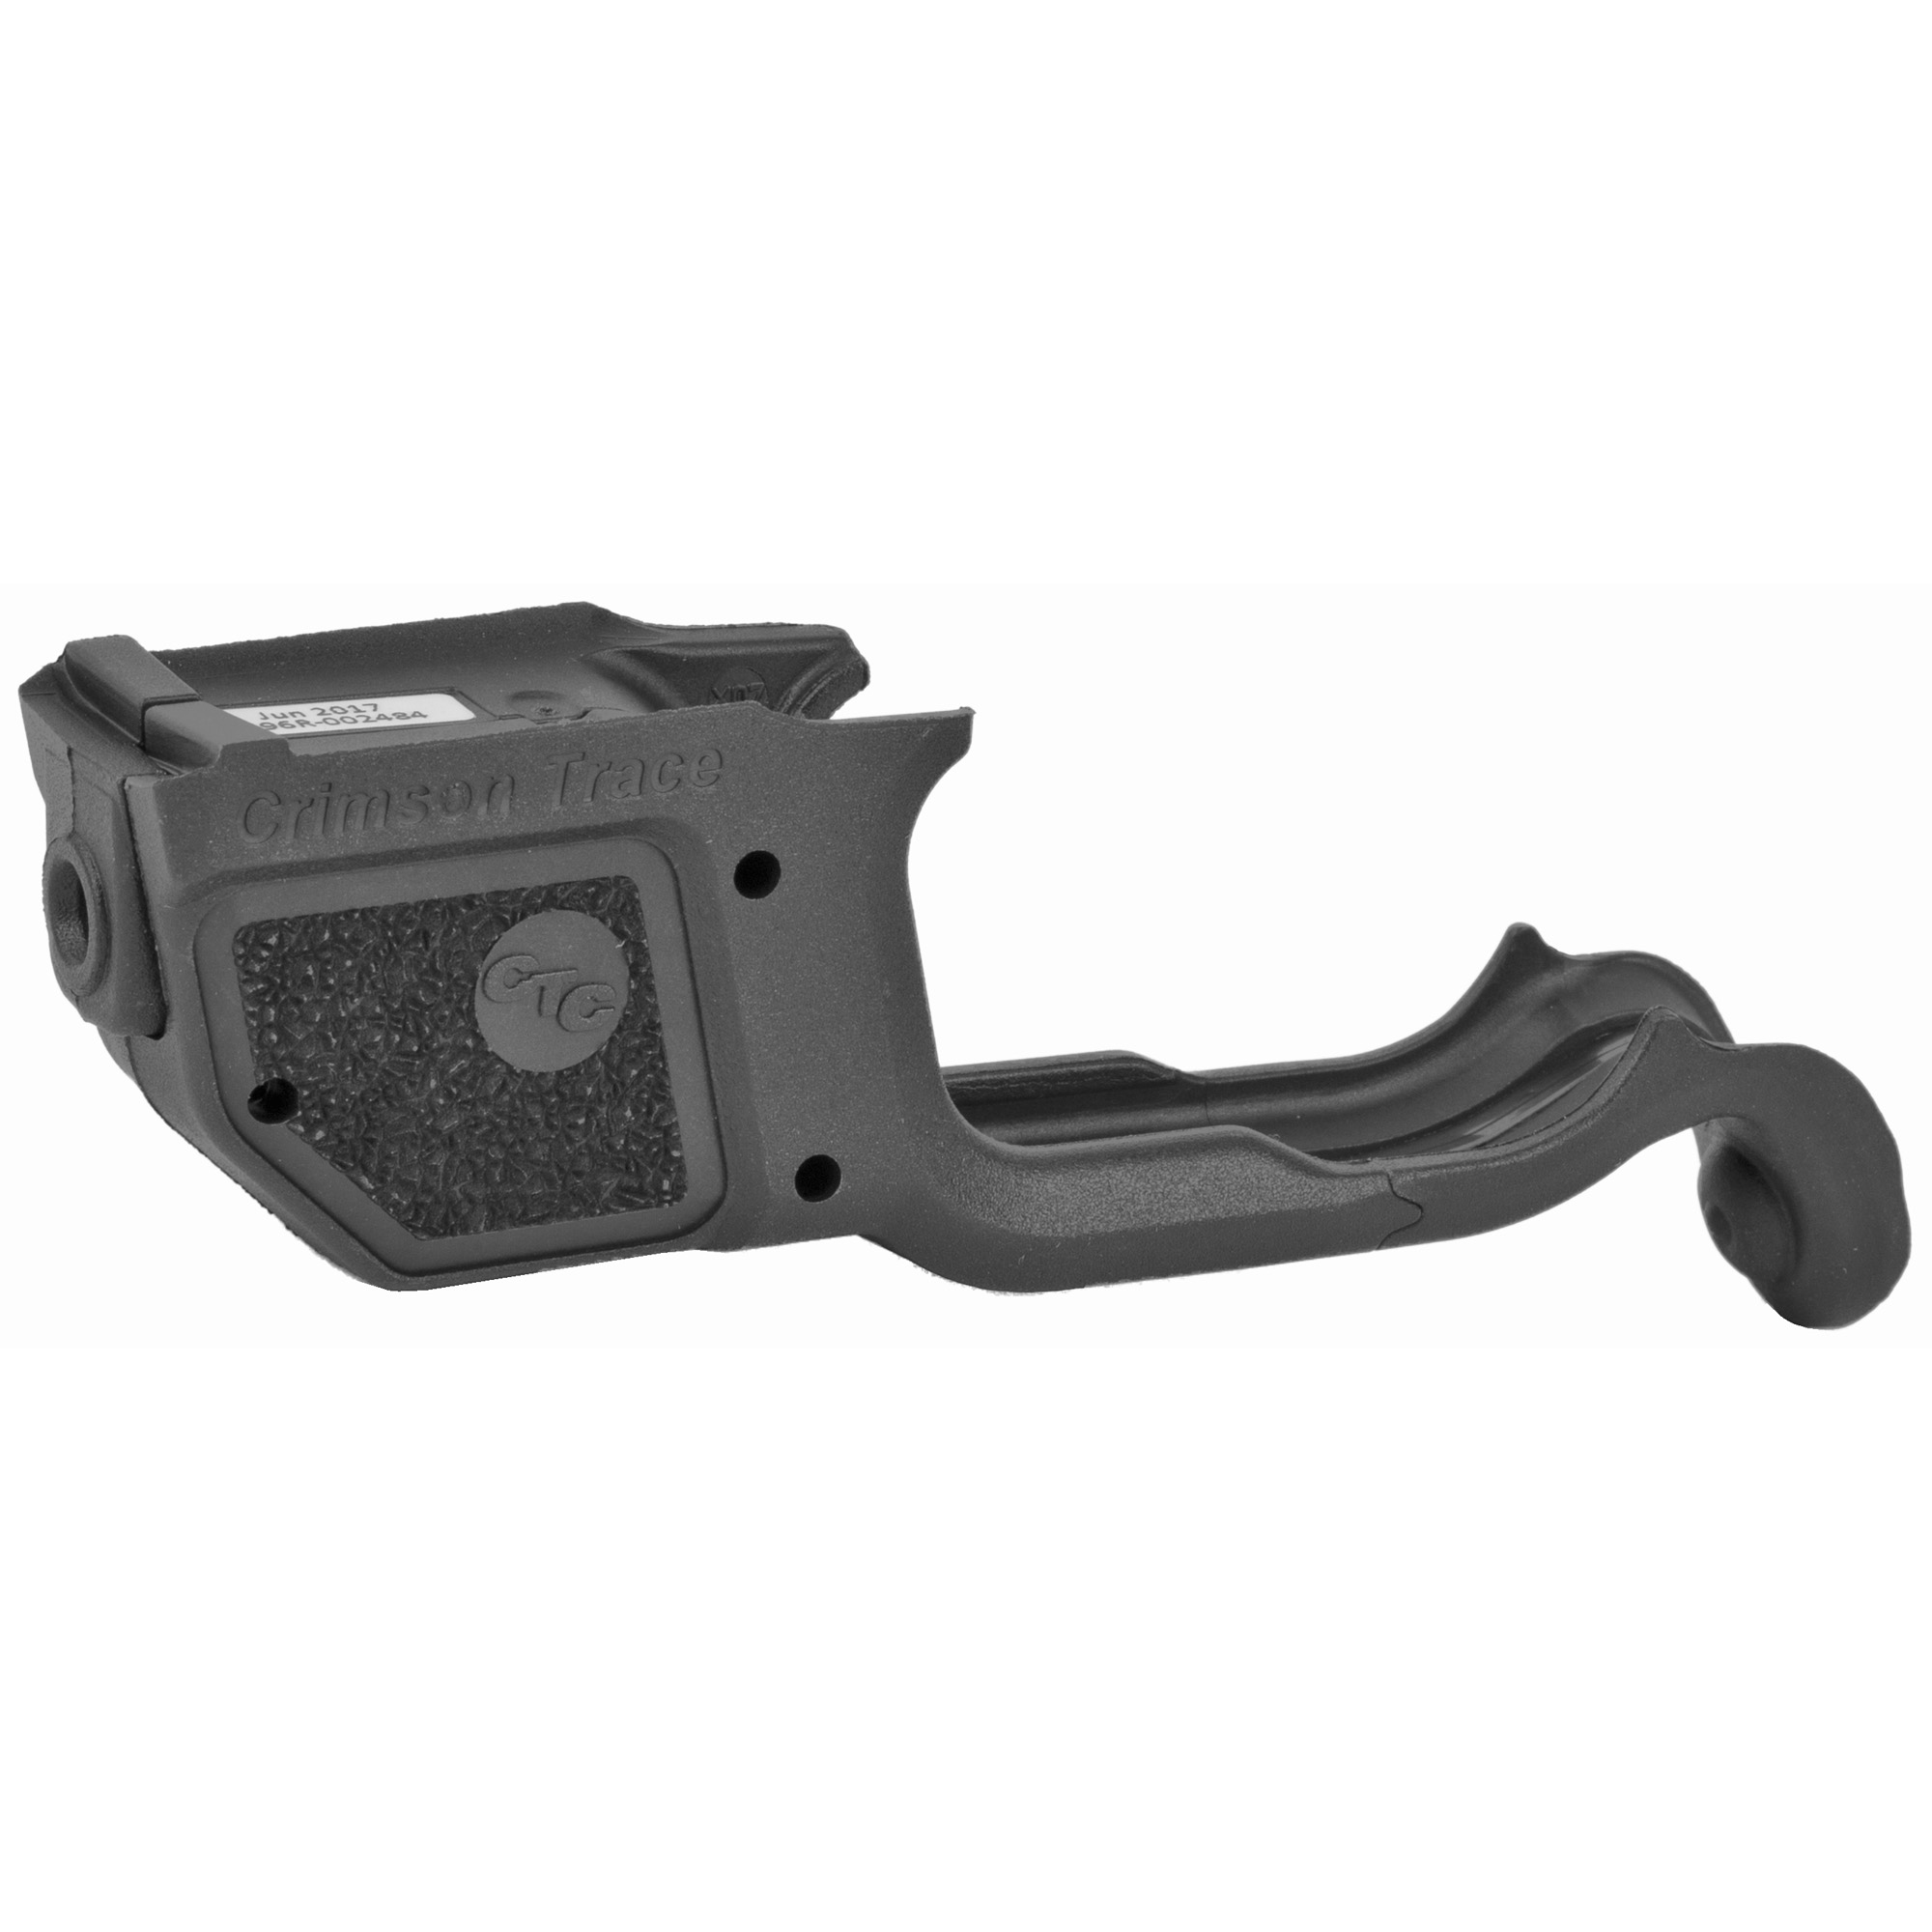 """The LG-496 Laserguard(R) is a compact laser sight for Springfield Armory's XD MOD.2 Series pistols. Attached firmly to the trigger guard"""" the laser's slim profile matches that of the pistol"""" and features Crimson Trace's trademark Instinctive Activation(TM). The laser sight is user-installed in minutes and is adjustable for windage and elevation."""